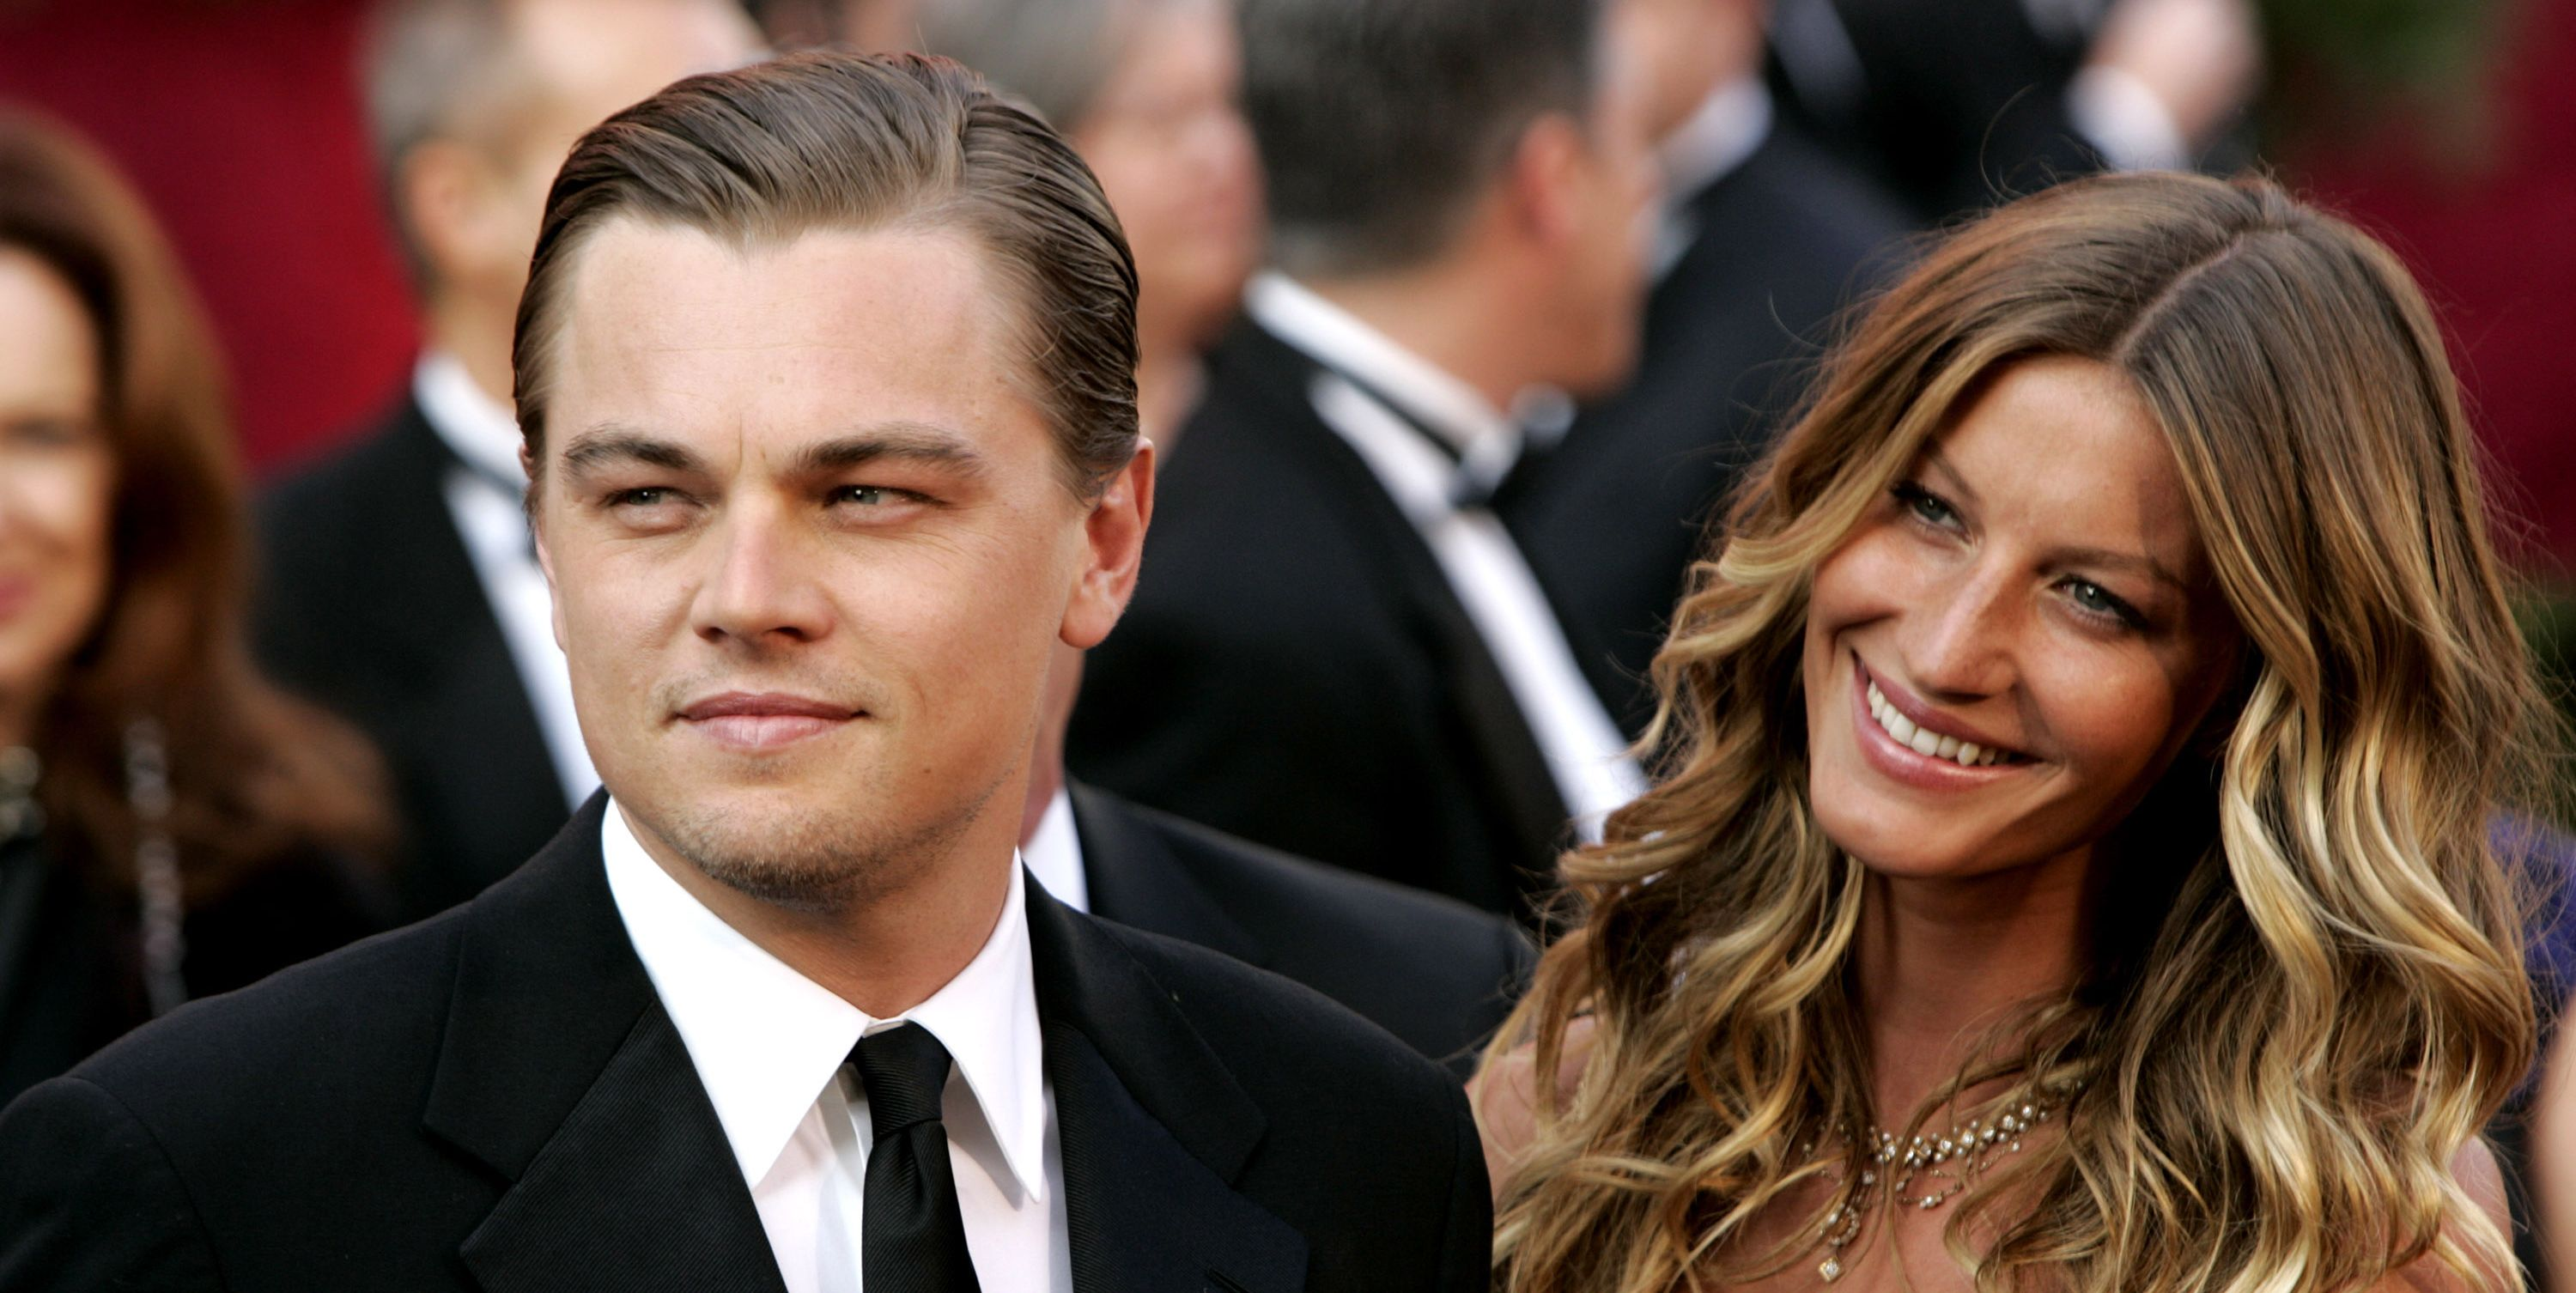 Gisele Bündchen Finally Opened Up About Why Her and Leonardo DiCaprio Broke Up in 2005